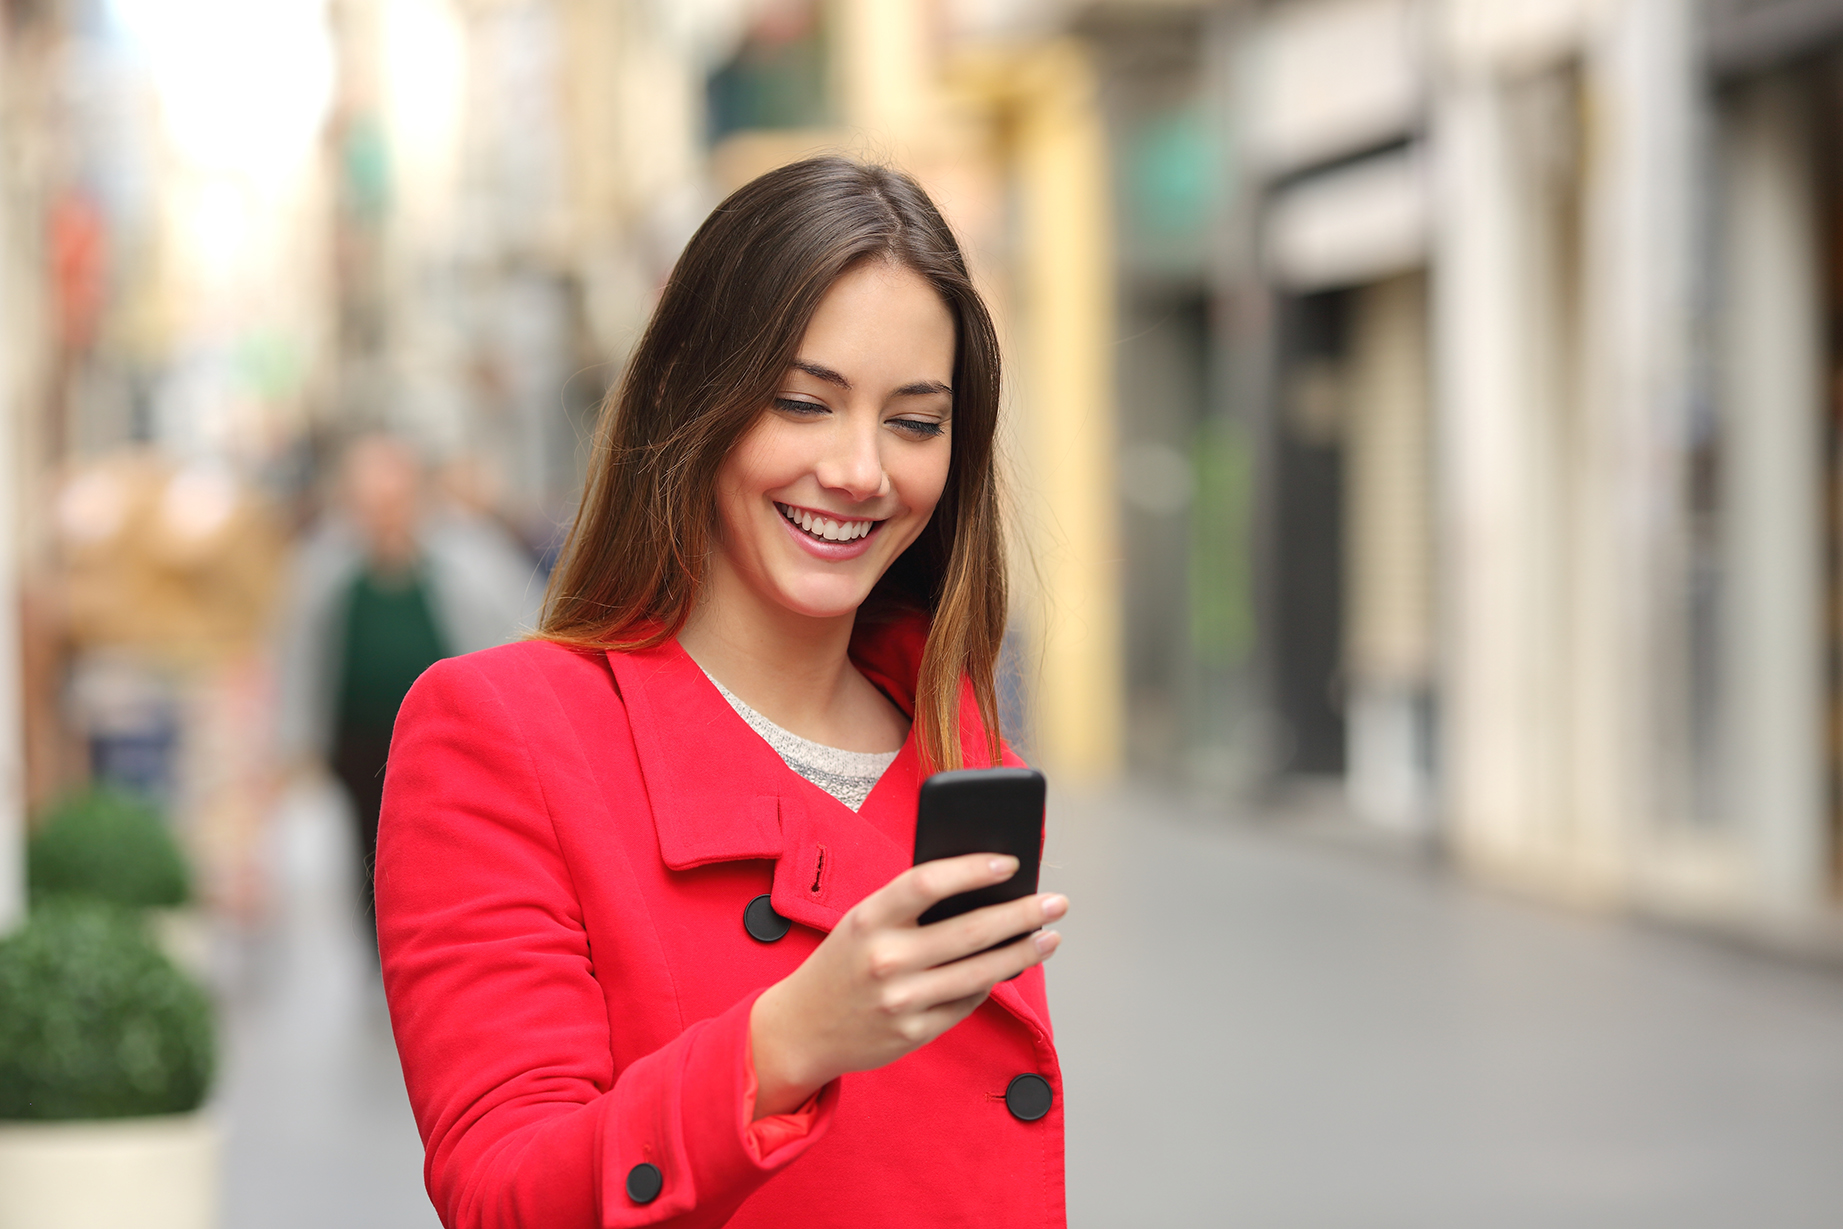 Apps for hairdressers